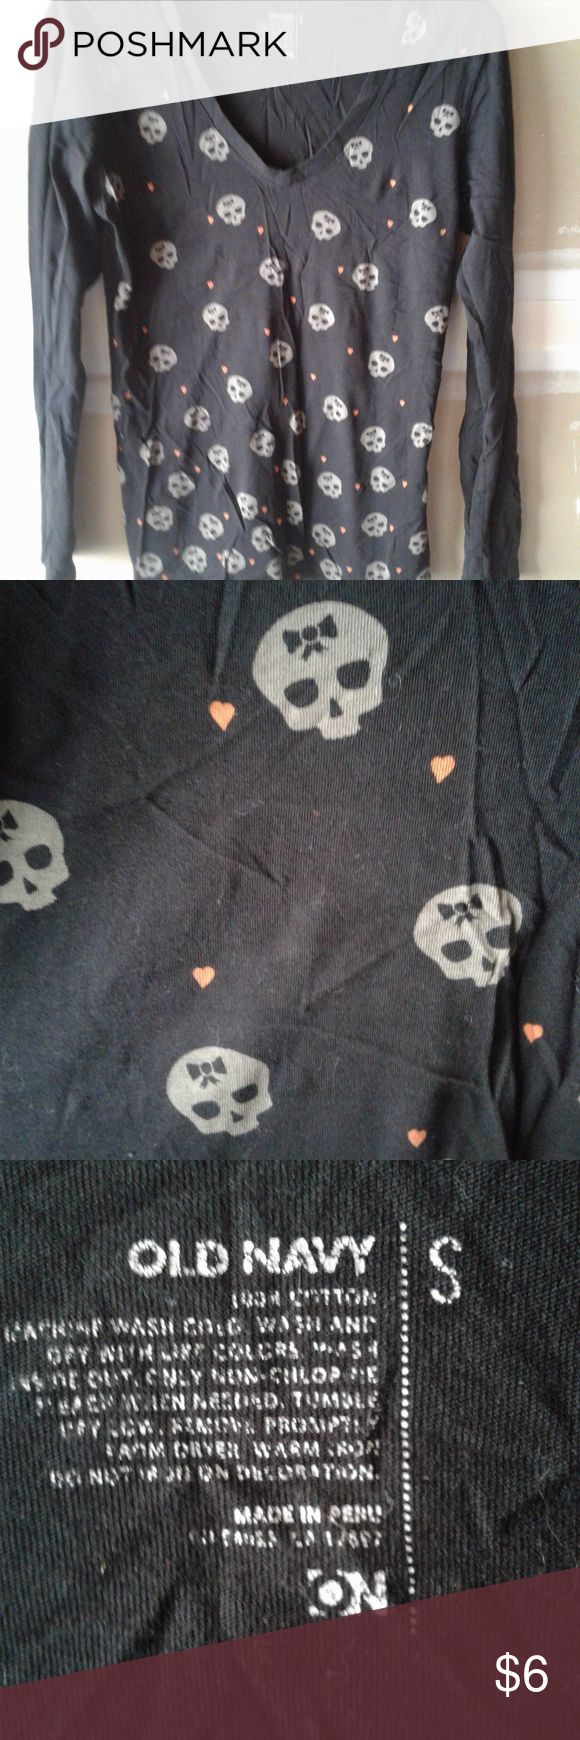 Skulls and bows This is a pretty, soft, super comfy shirt. It can be used around Holloween or all year around. The skulls have little bows on their head and theres little orange hearts.  It should not be this wrinkled when recieved Old Navy Tops Tees - Long Sleeve